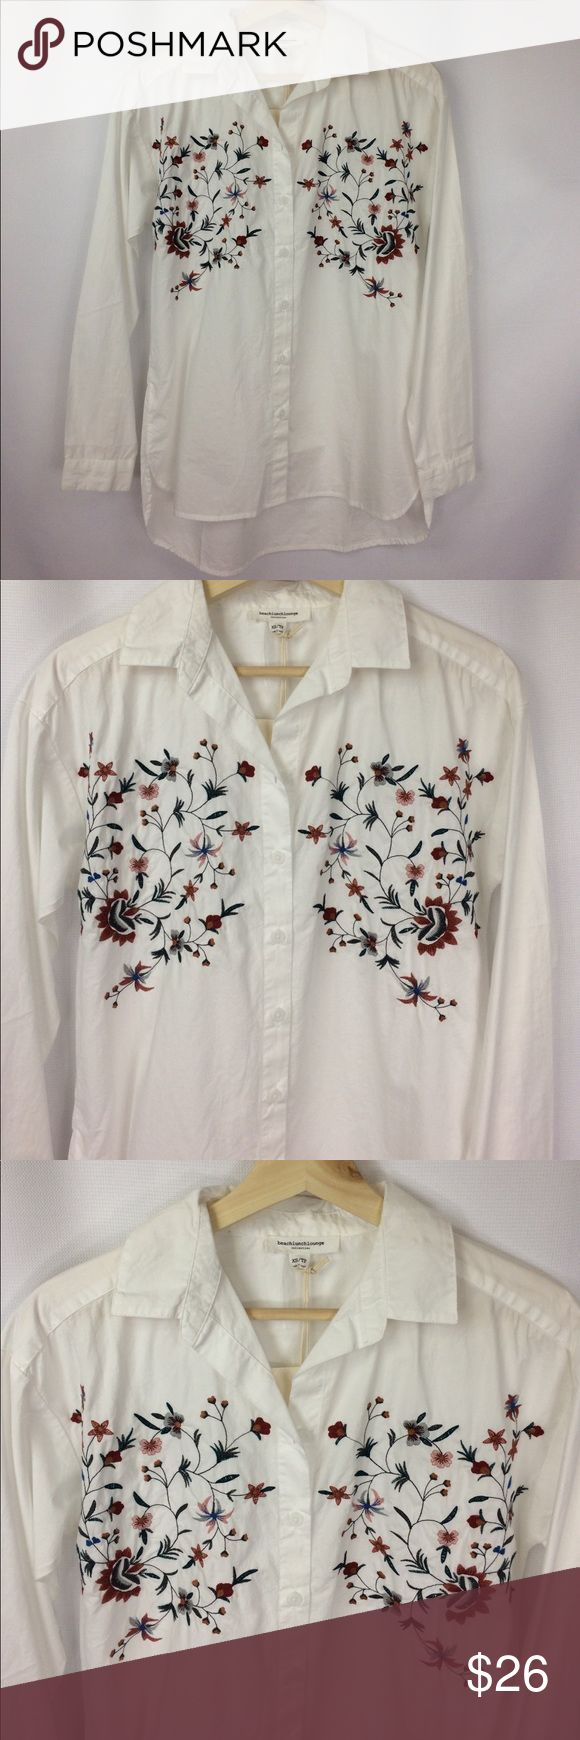 """Beach Lunch Lounge blouse embroidered NWT Brand new! Light & airy 100%cotton. Beautiful embroidered blouse. XS but is a roomy style shirt. Approx 19"""" across and 26"""" front length and 29""""in the back. High low style. This brand is sold at Bloomingdales. Can be worn open with a tank under as well. Beach Lunch Lounge Tops Blouses"""